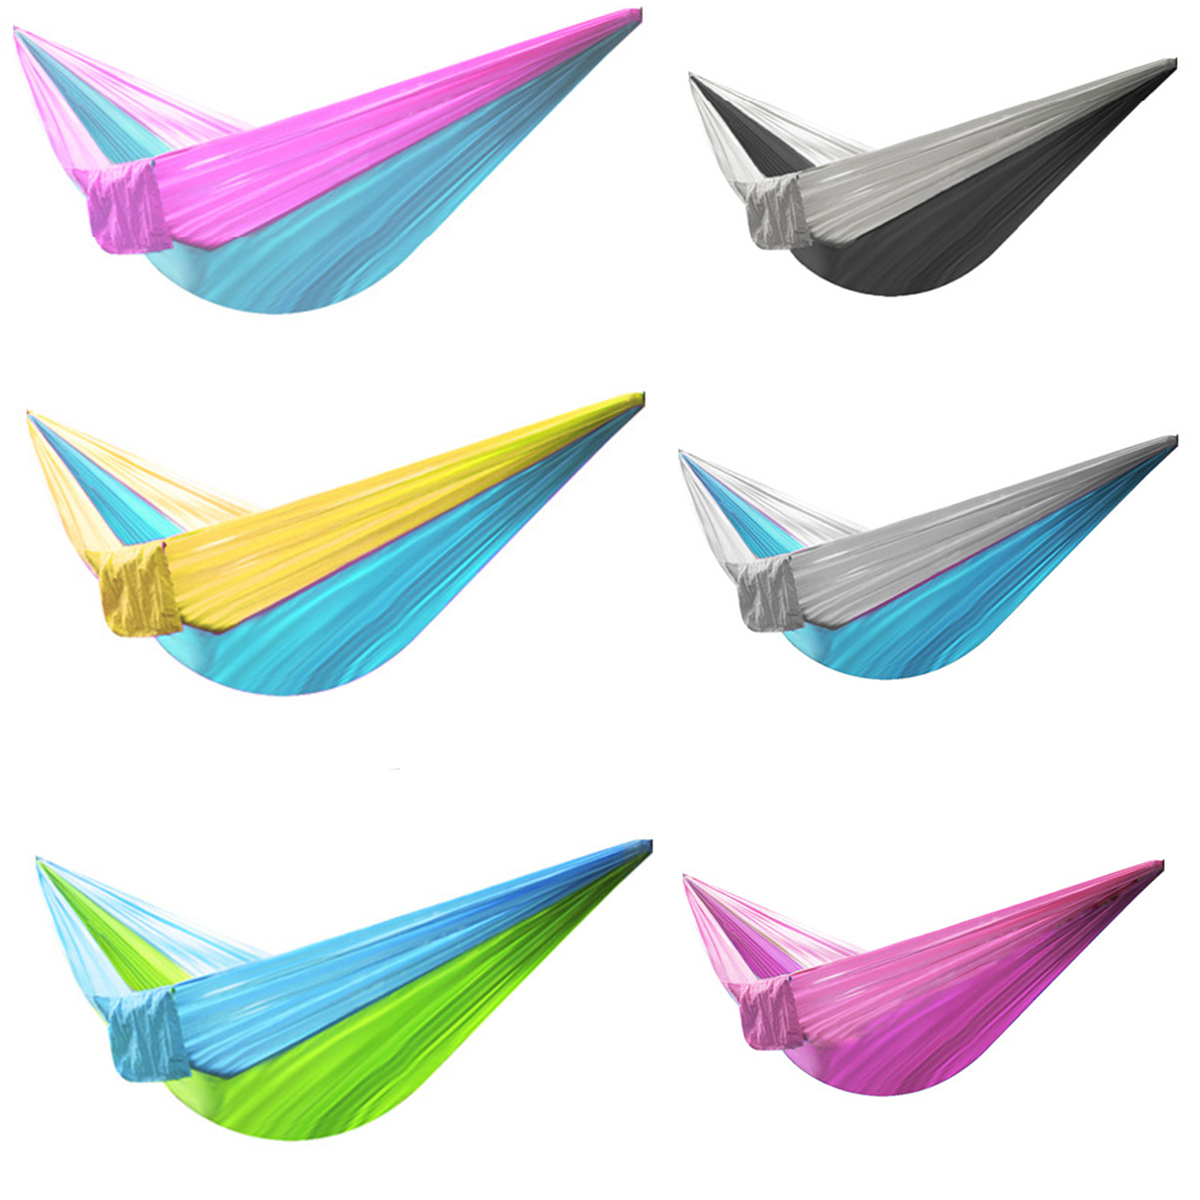 Portable Hammock Double Person Camping Survival garden hunting Leisure travel furniture Parachute Hammocks 270CM x 140CM 2016 profession canvas hammock outdoor double hammocks camping hunting leisure travel by walking portable bed 0016